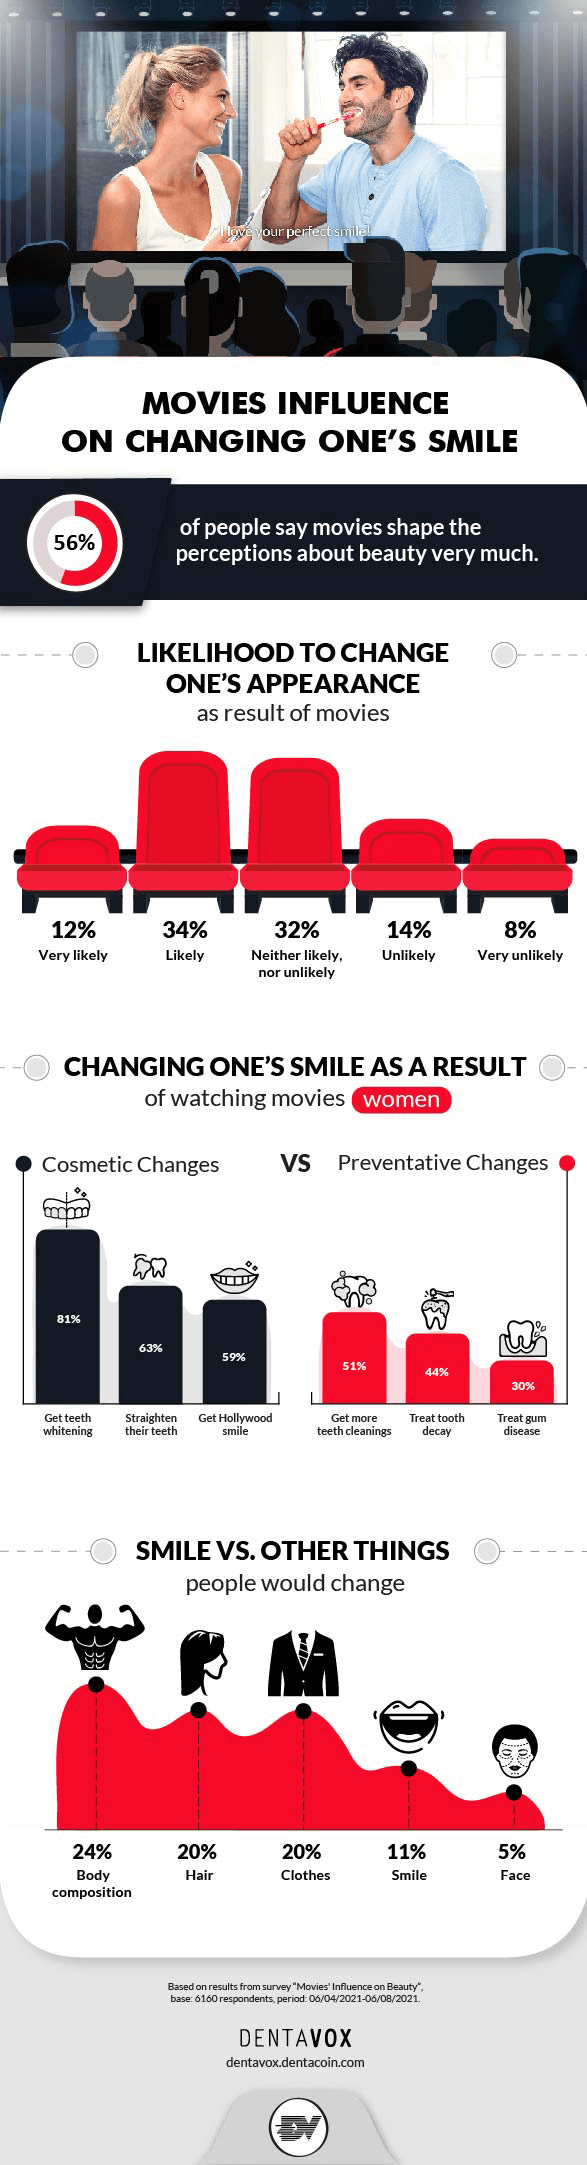 movies influence on changing ones smile